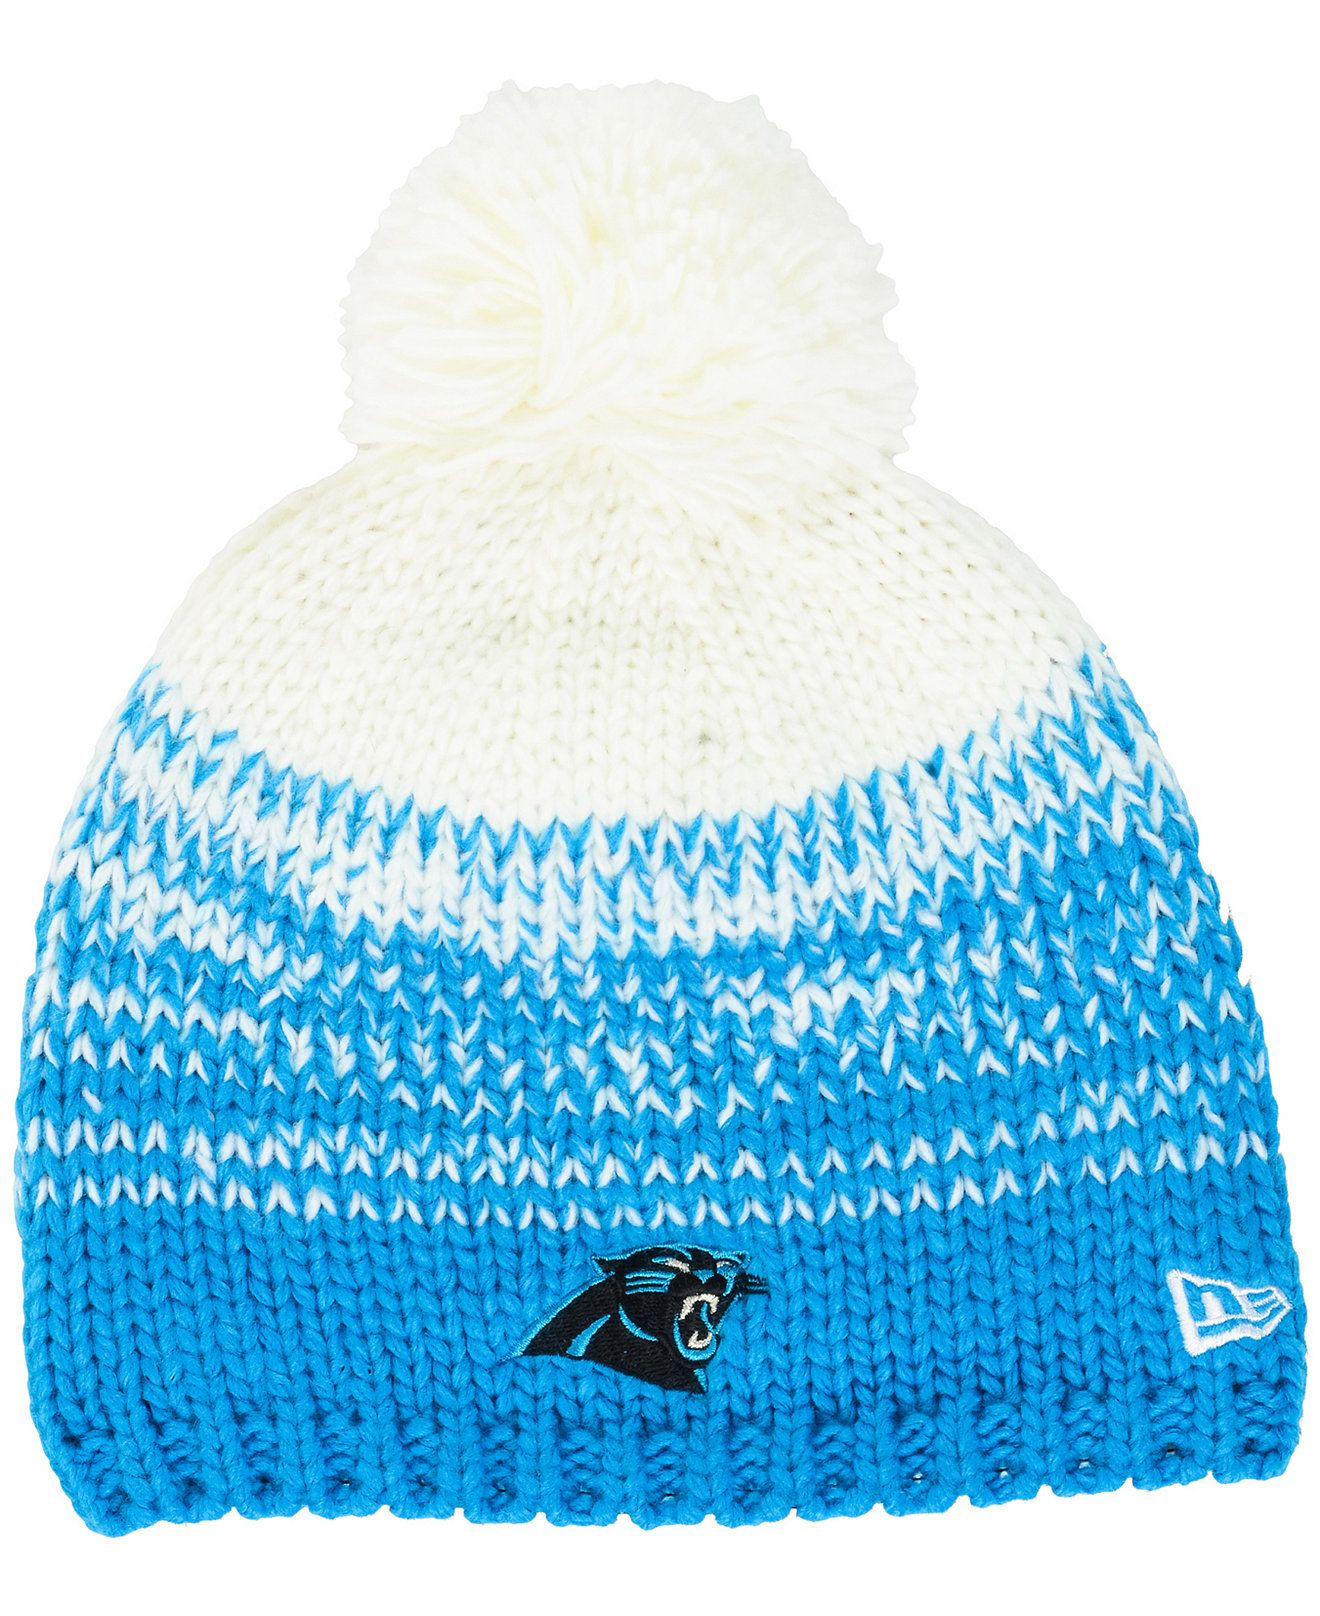 ba7ec1e5979 ... get new era womens carolina panthers polar dust knit hat sports fan  shop by lids men